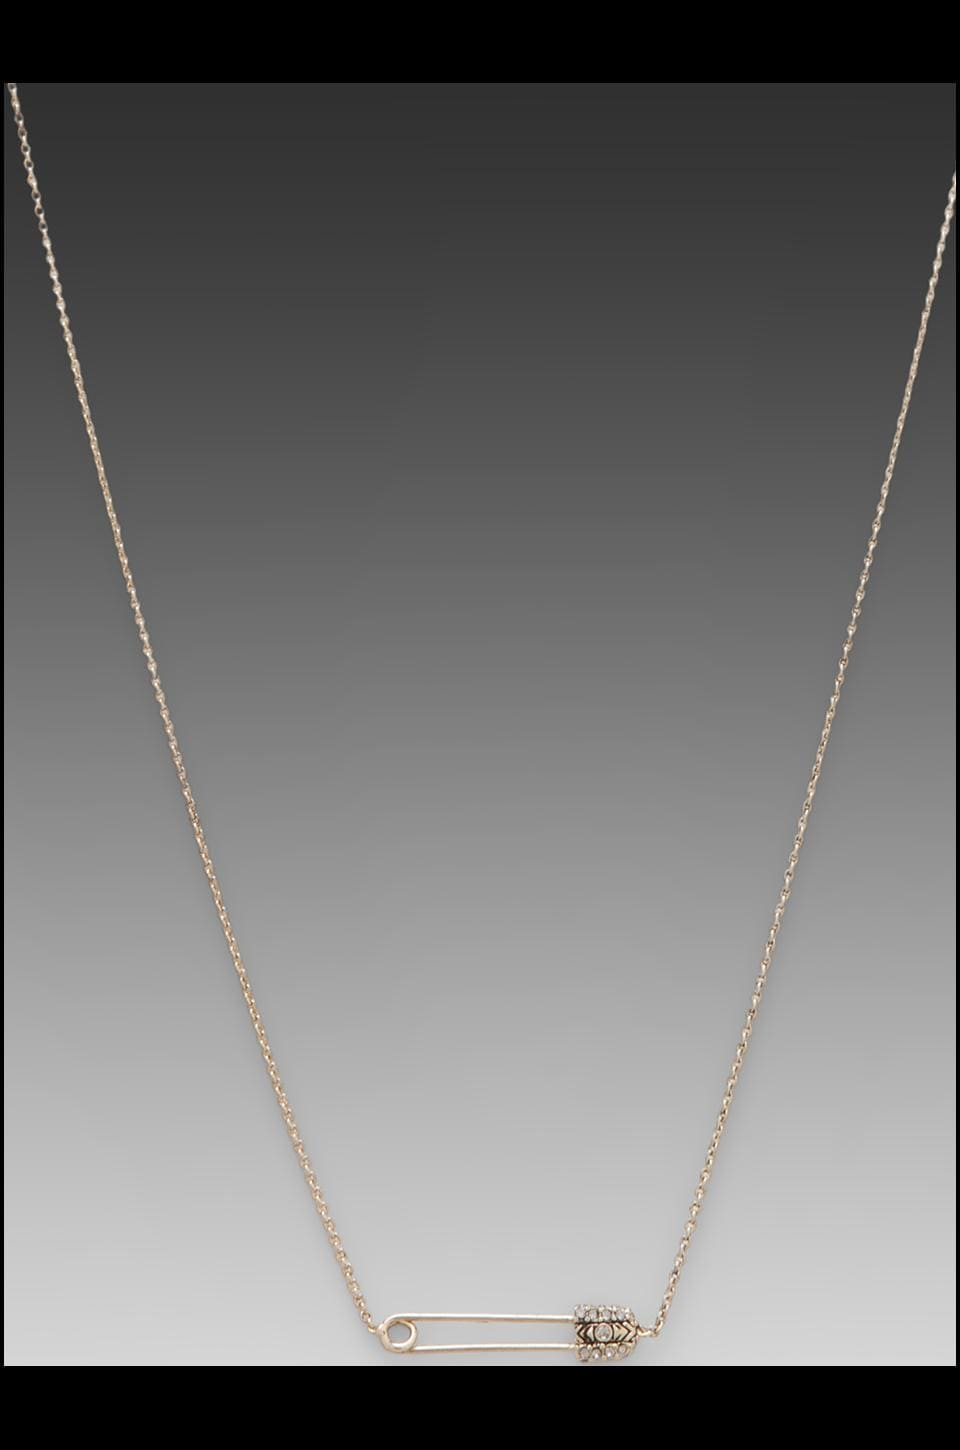 House of Harlow Petite Safety Pin Necklace in Gold